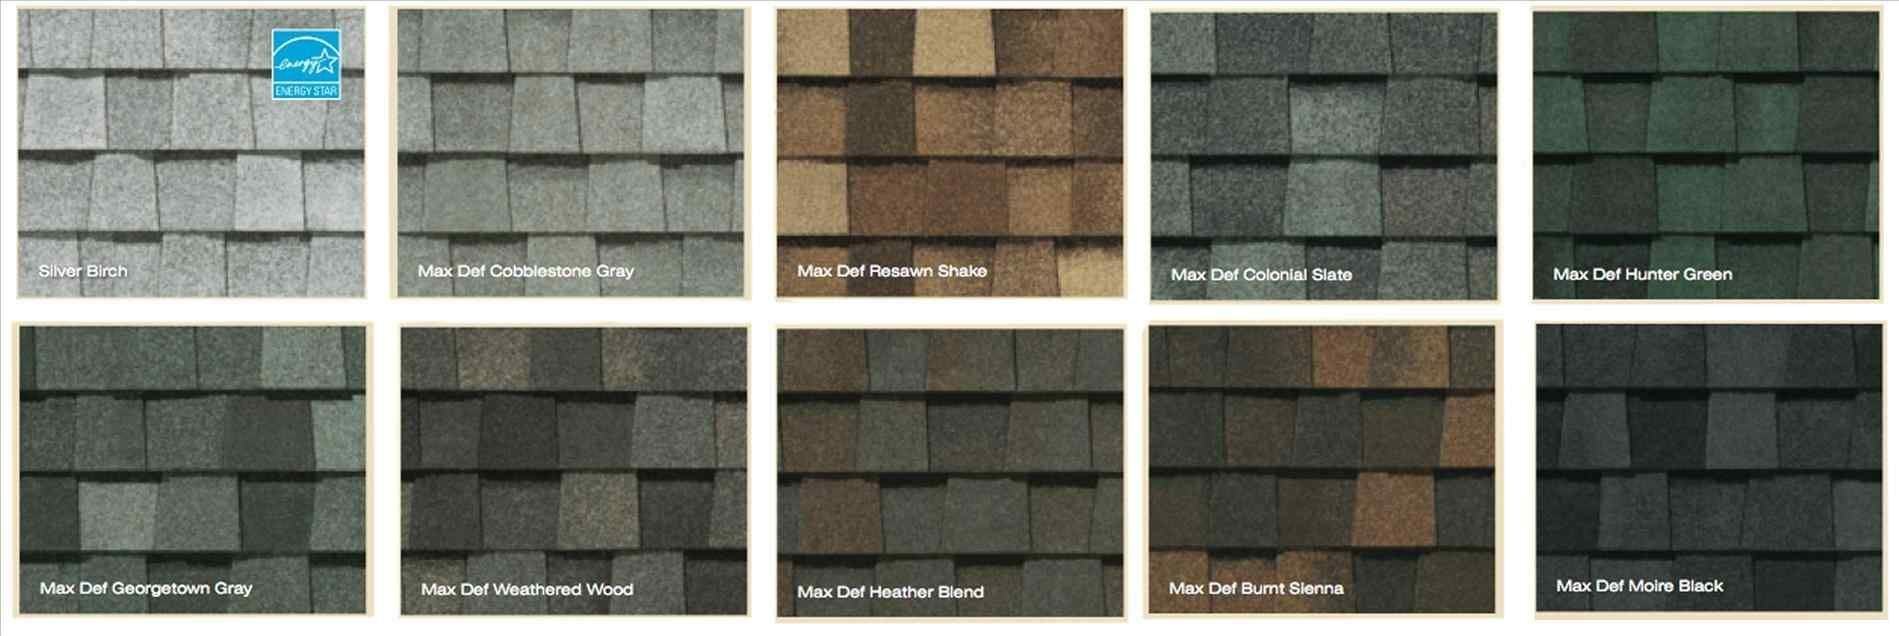 Best High Quality Roof Shingles With Images Roof Shingle 400 x 300